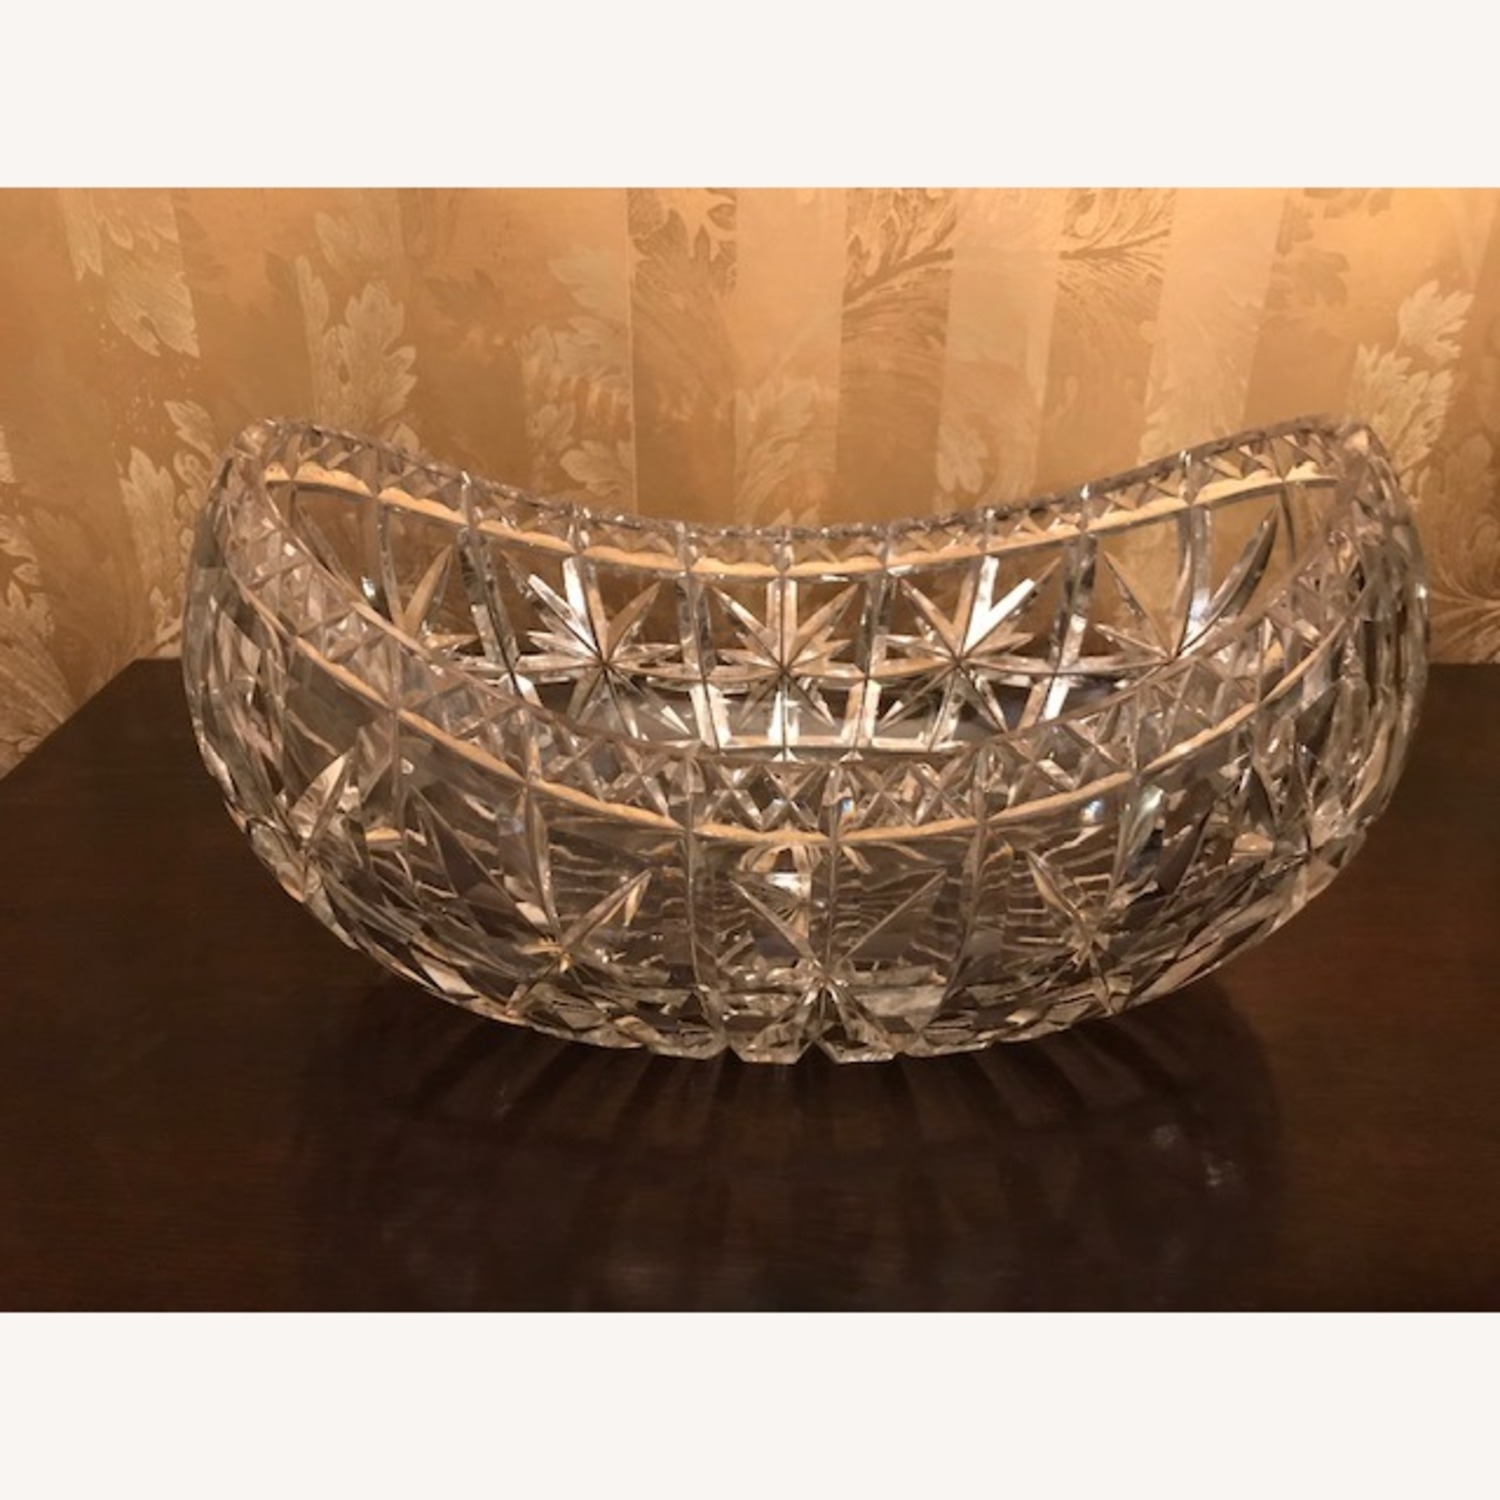 Enormous Antique 1800s Hand Cut Crystal Boat Bowl - image-2